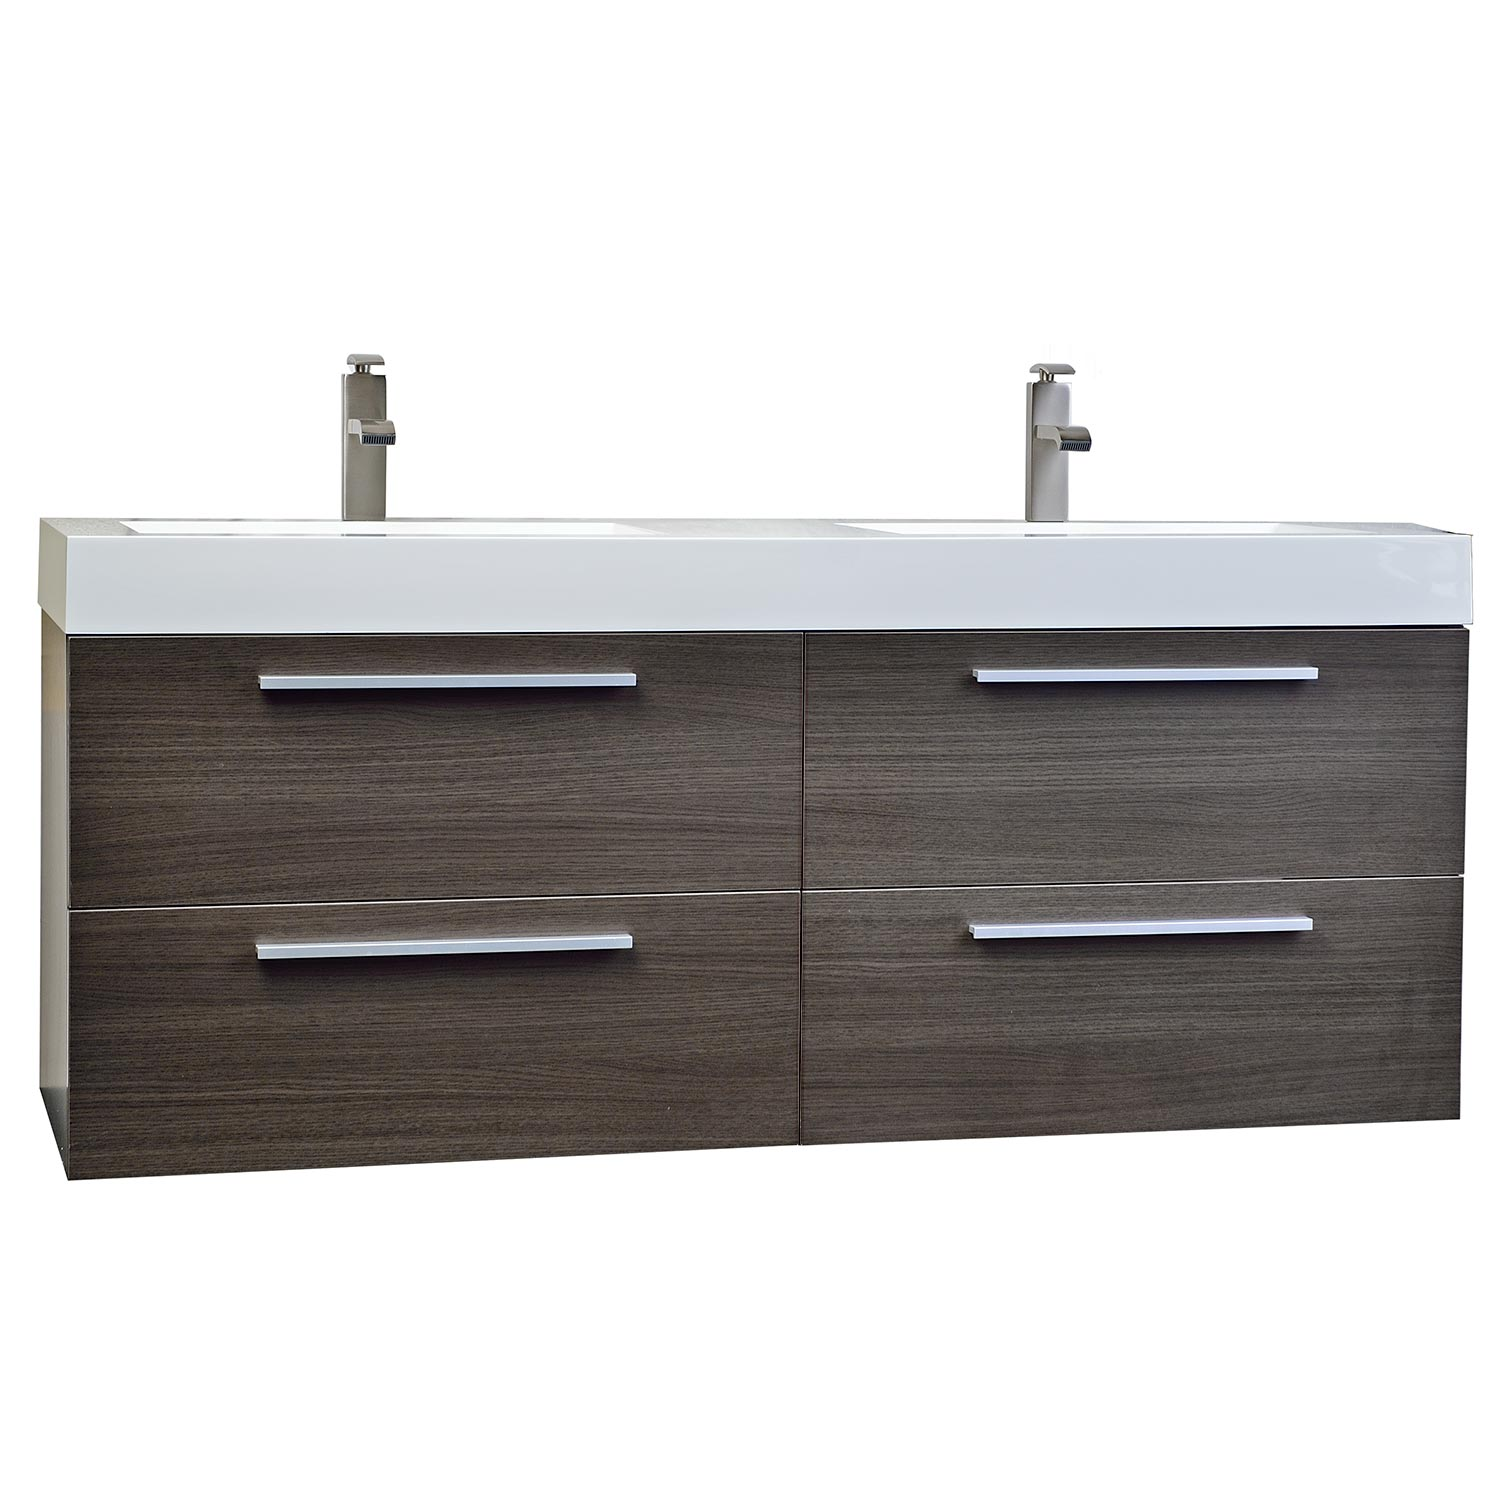 your undermount wash bathroom the sink lines gray cabinet drawer teak look nickel fit trio stylish brushed bringing space polished drawers pulls for this great of vanity rectangular to front a venica